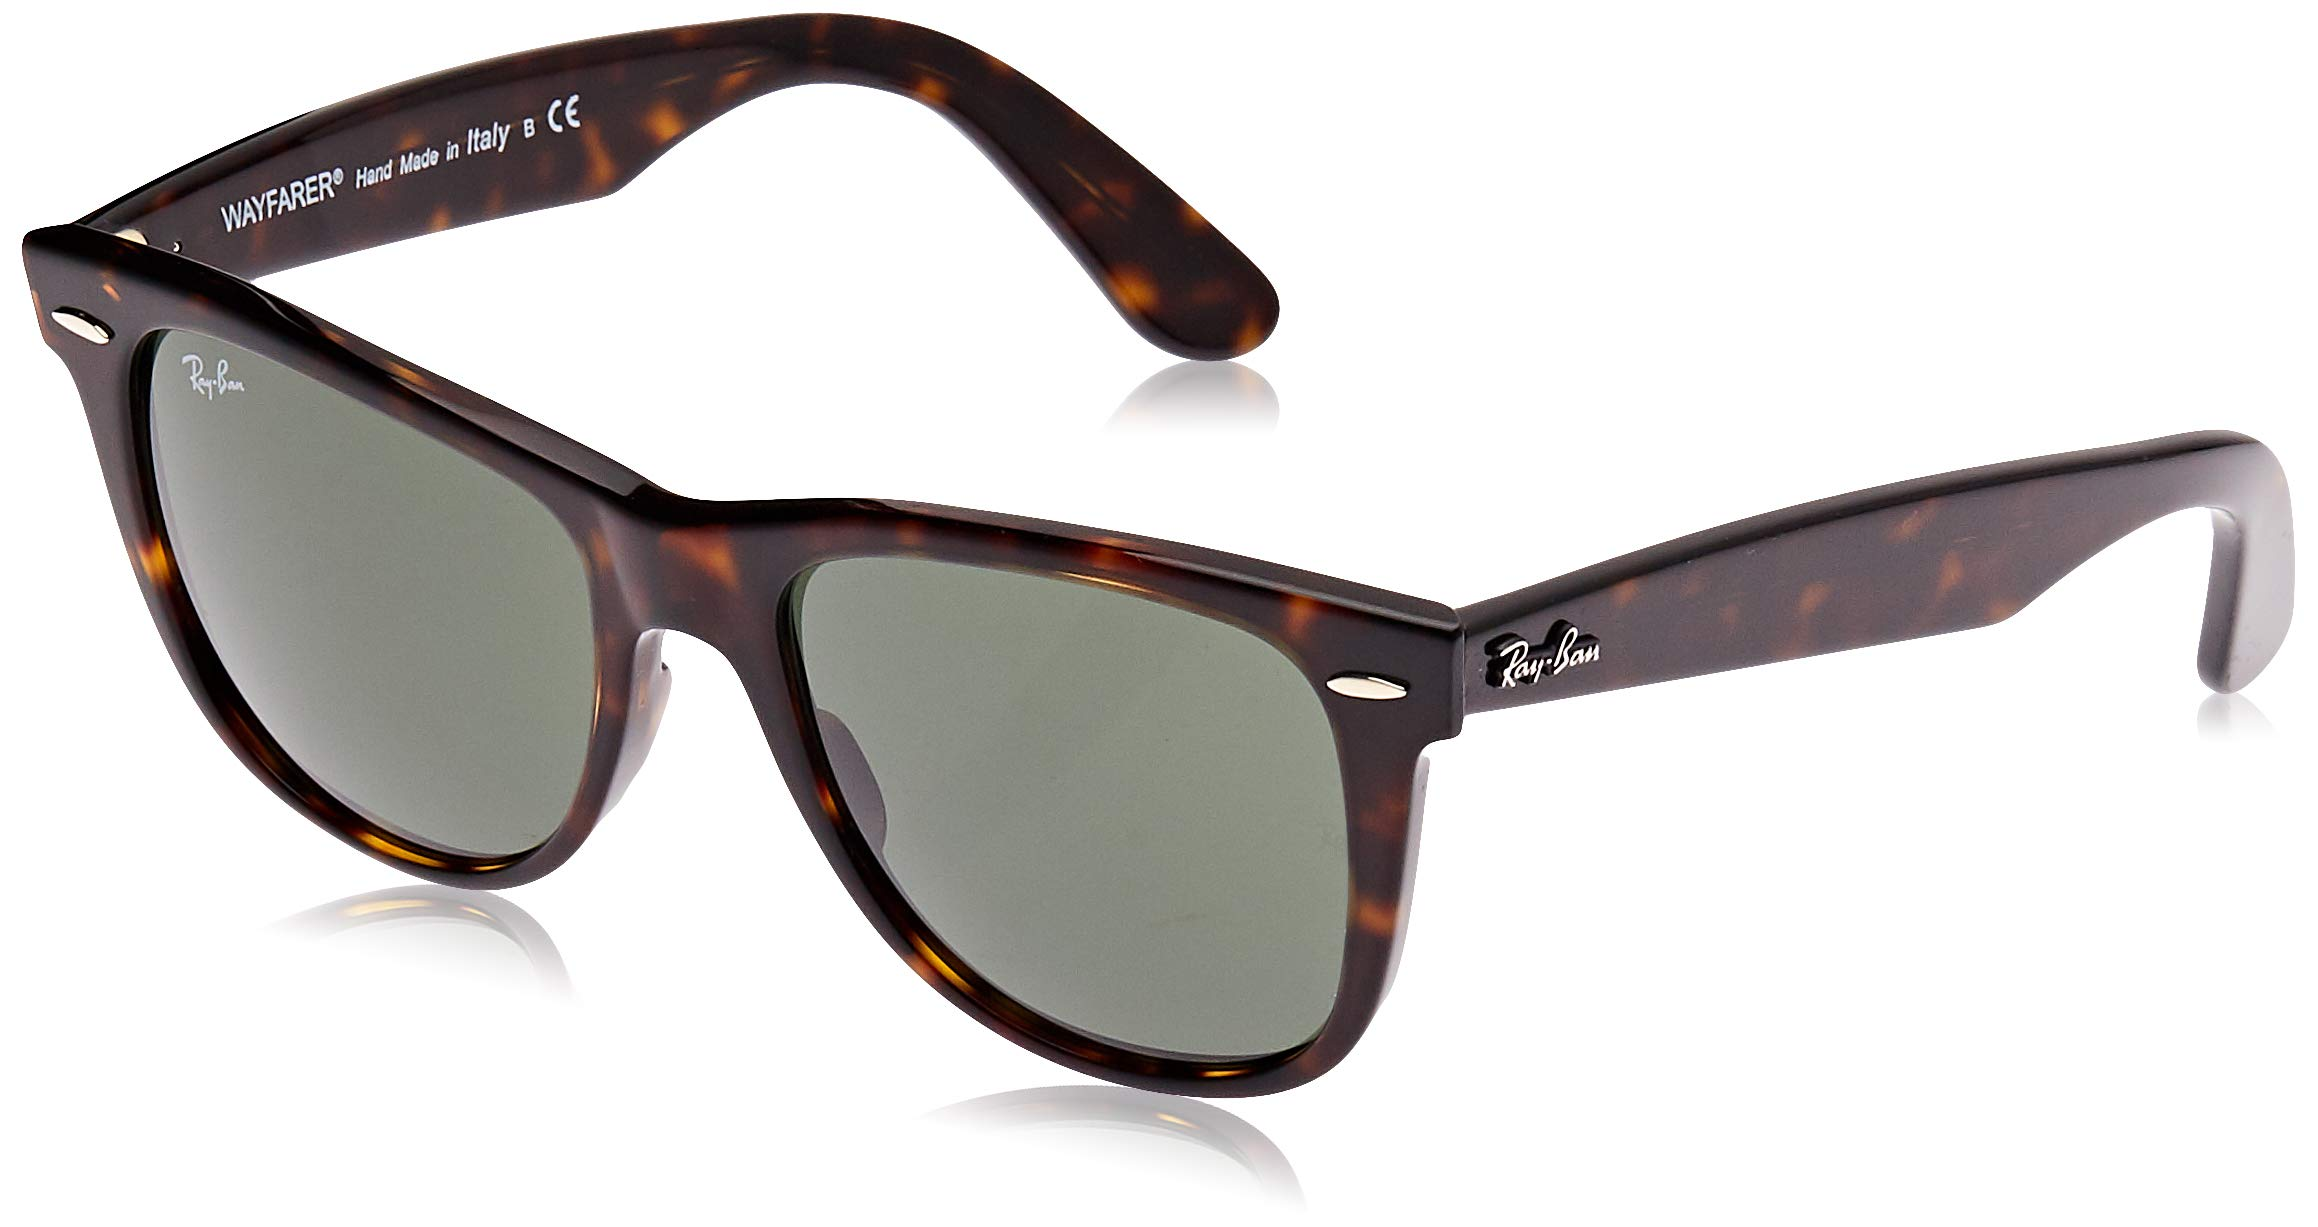 Ray-Ban RB2140 Wayfarer Sunglasses, Tortoise/Green, 54 mm by RAY-BAN